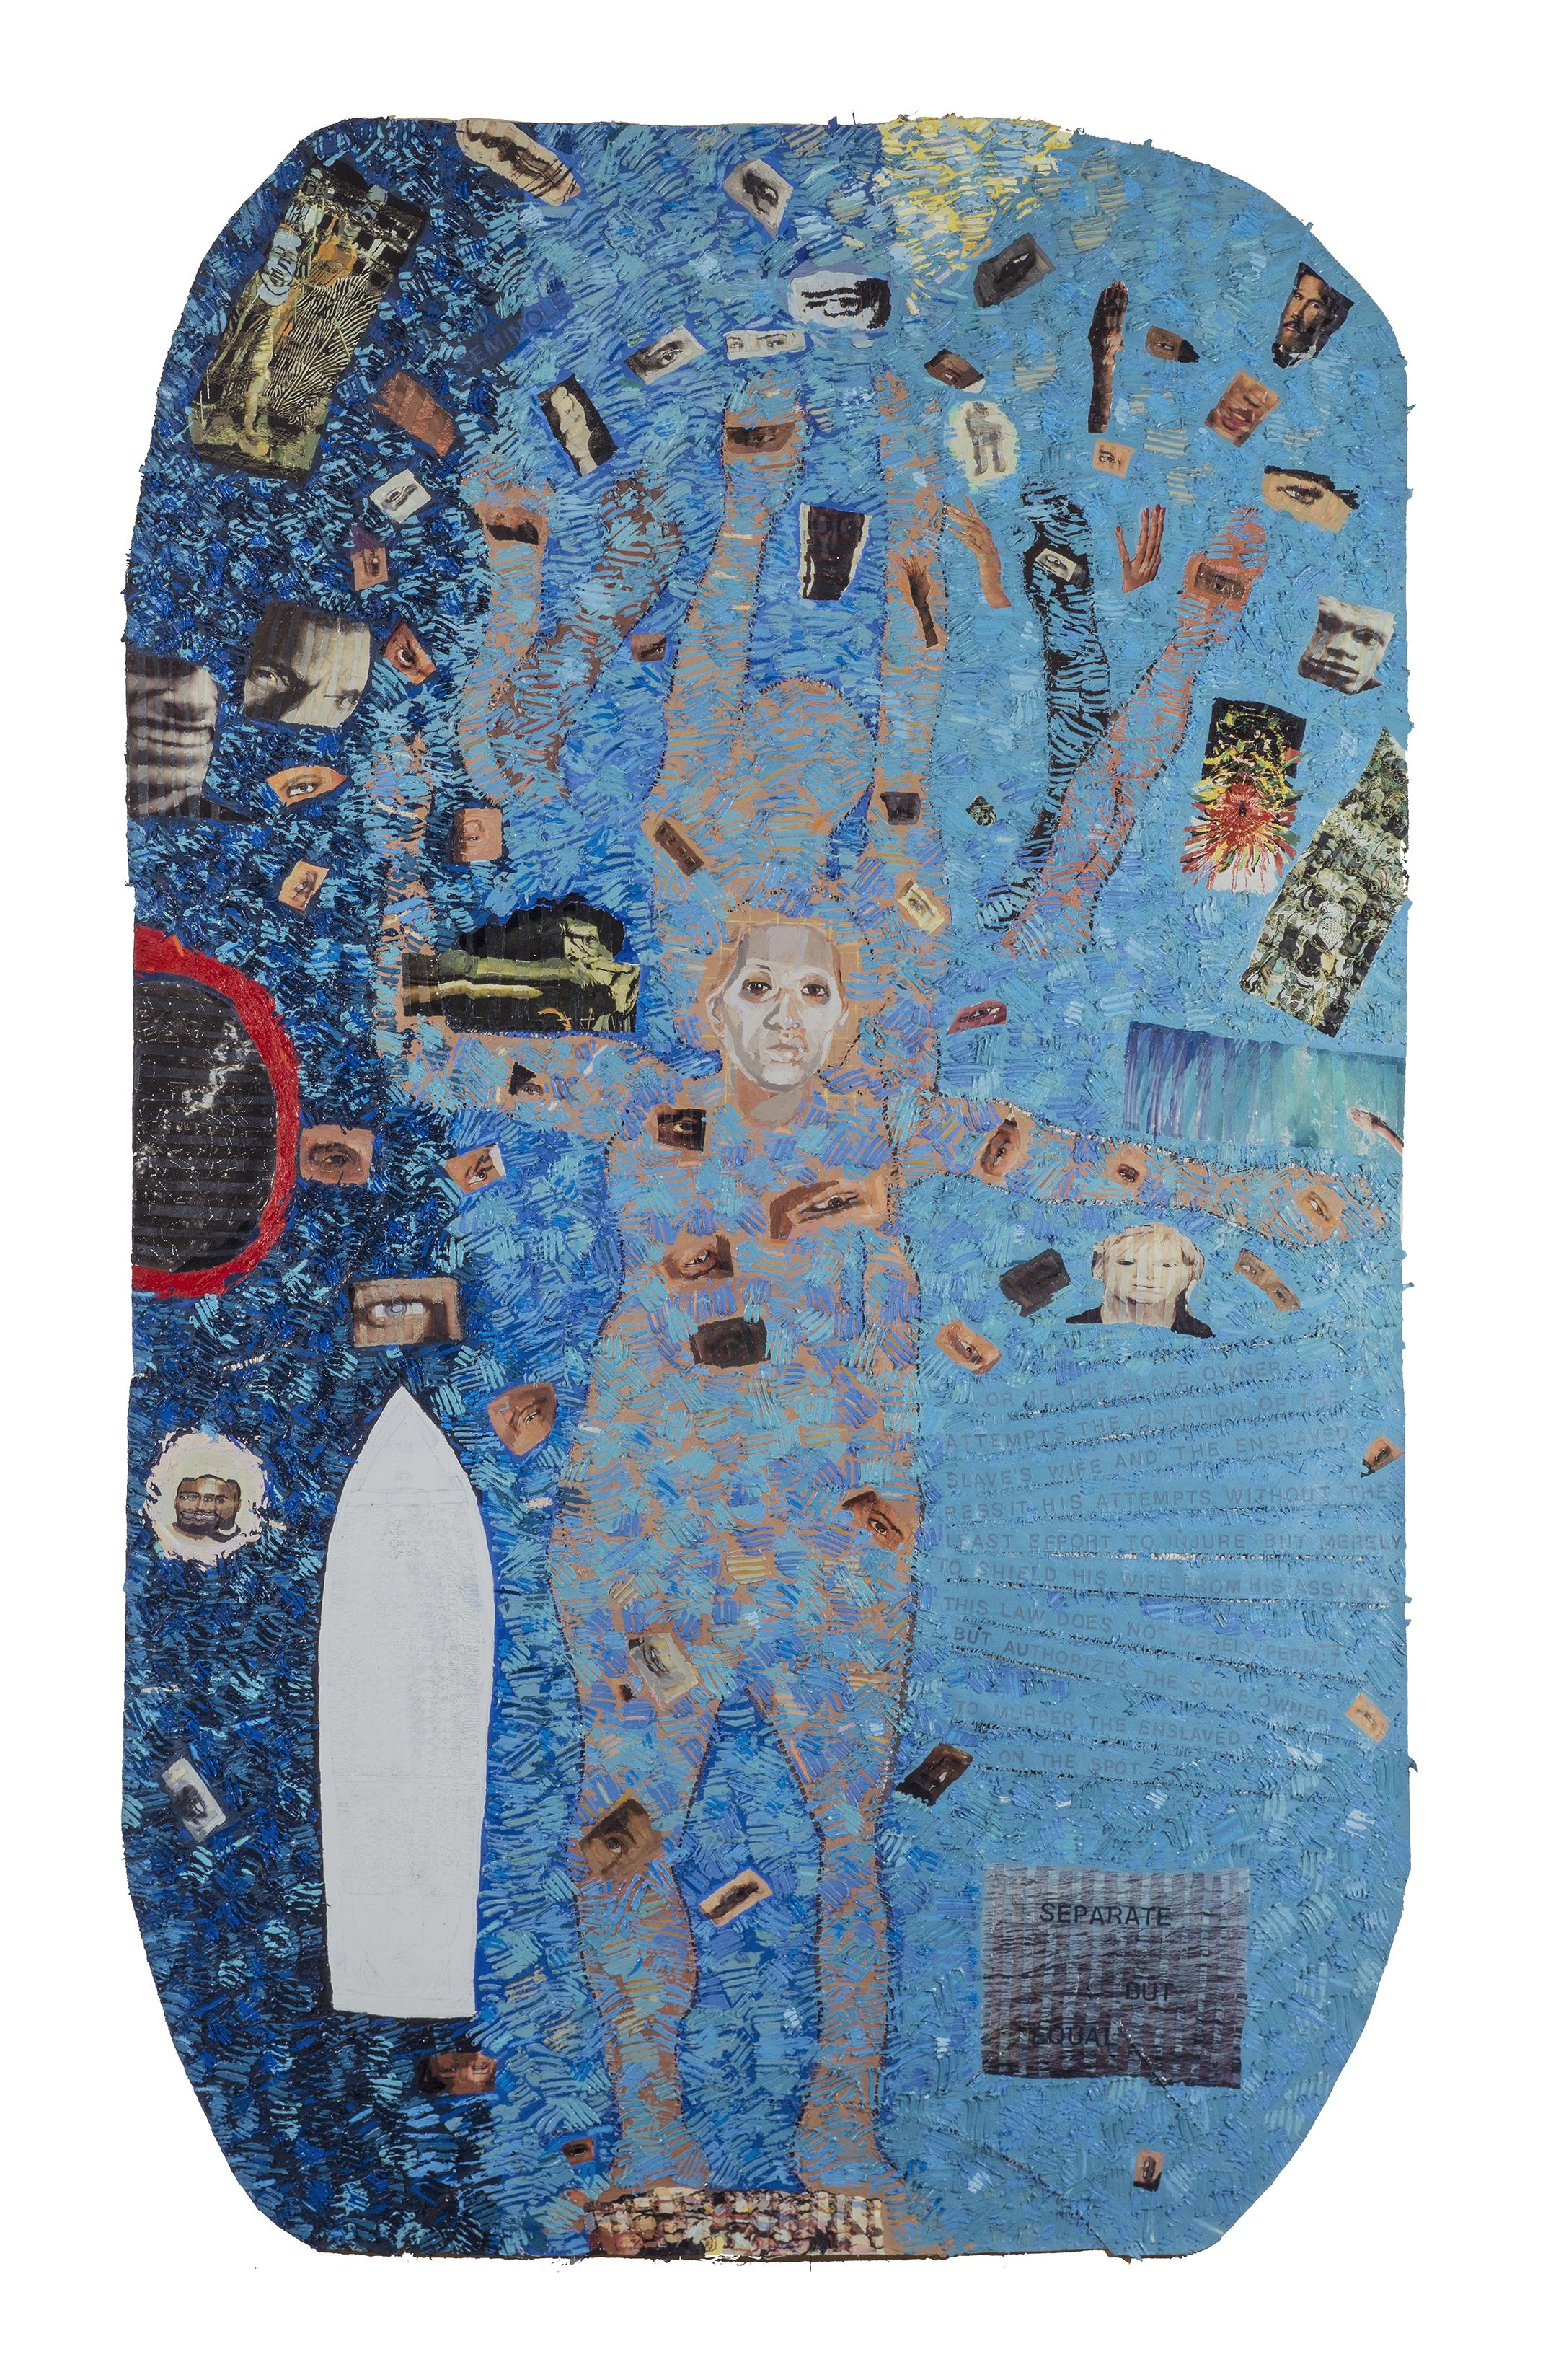 A vertical painting with a blue background includes a large human form at its center, surrounded and partially covered by smaller images of eyes, faces, and hands. These smaller images appear collage-like, as if cut from other sources.